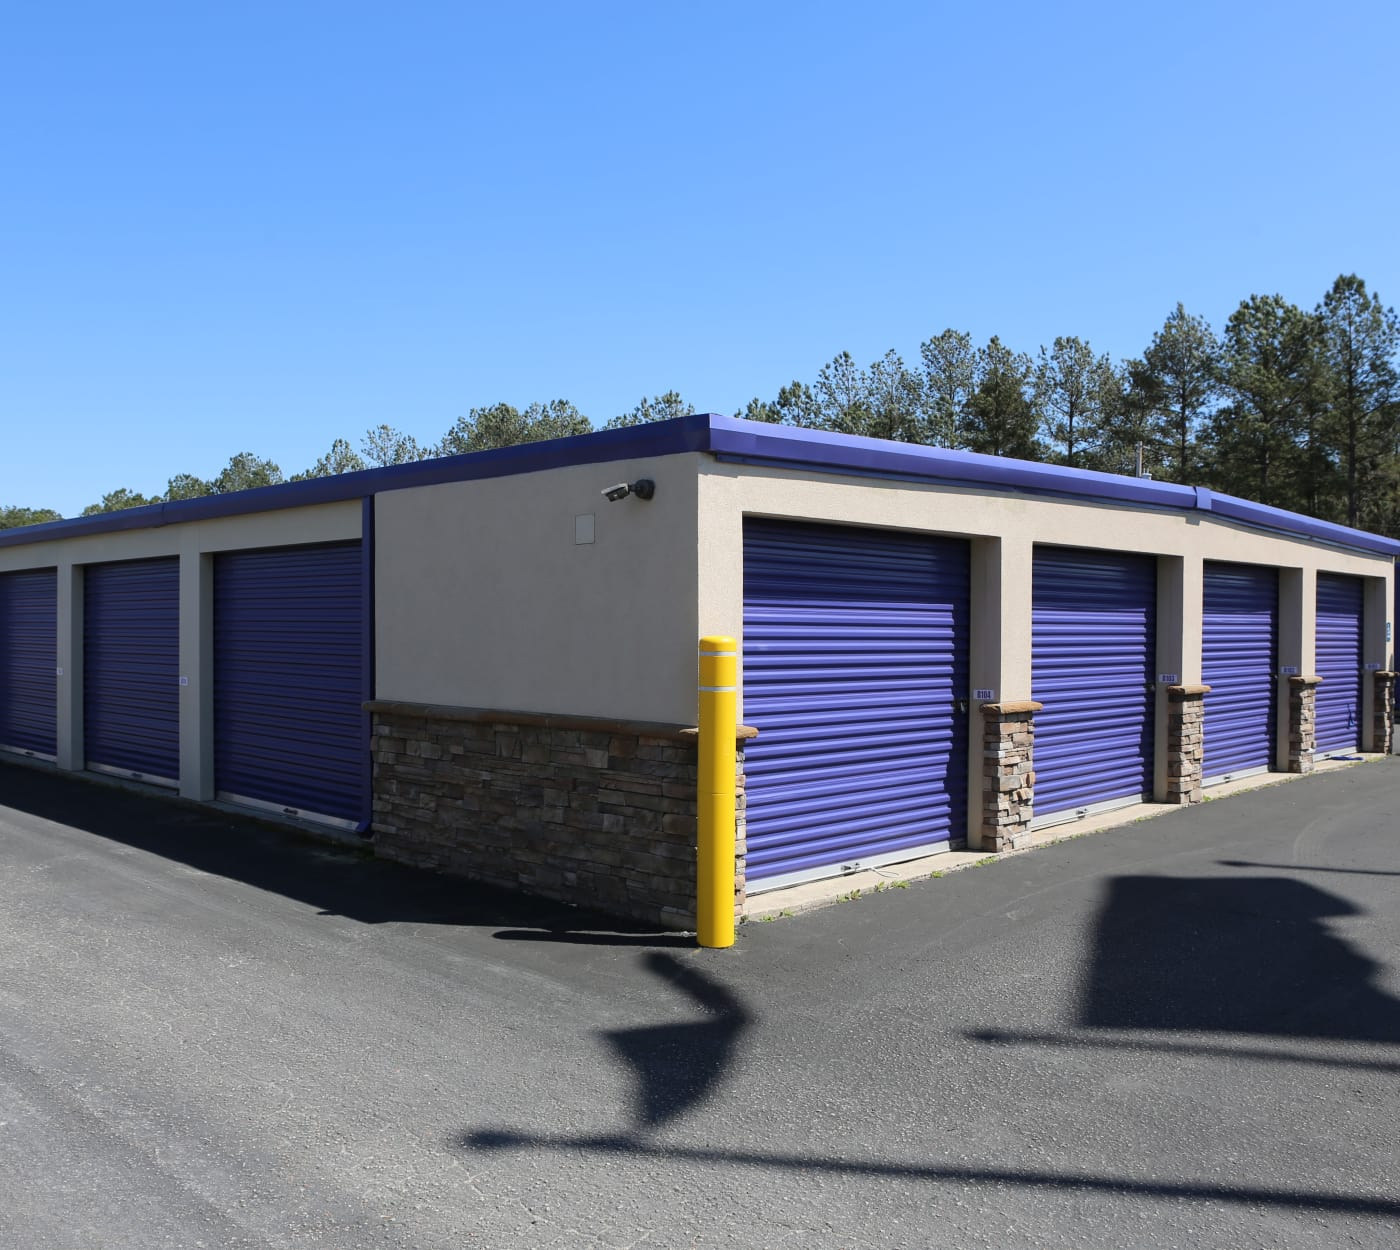 Ground-floor units at StoreSmart Self-Storage in Conway, South Carolina